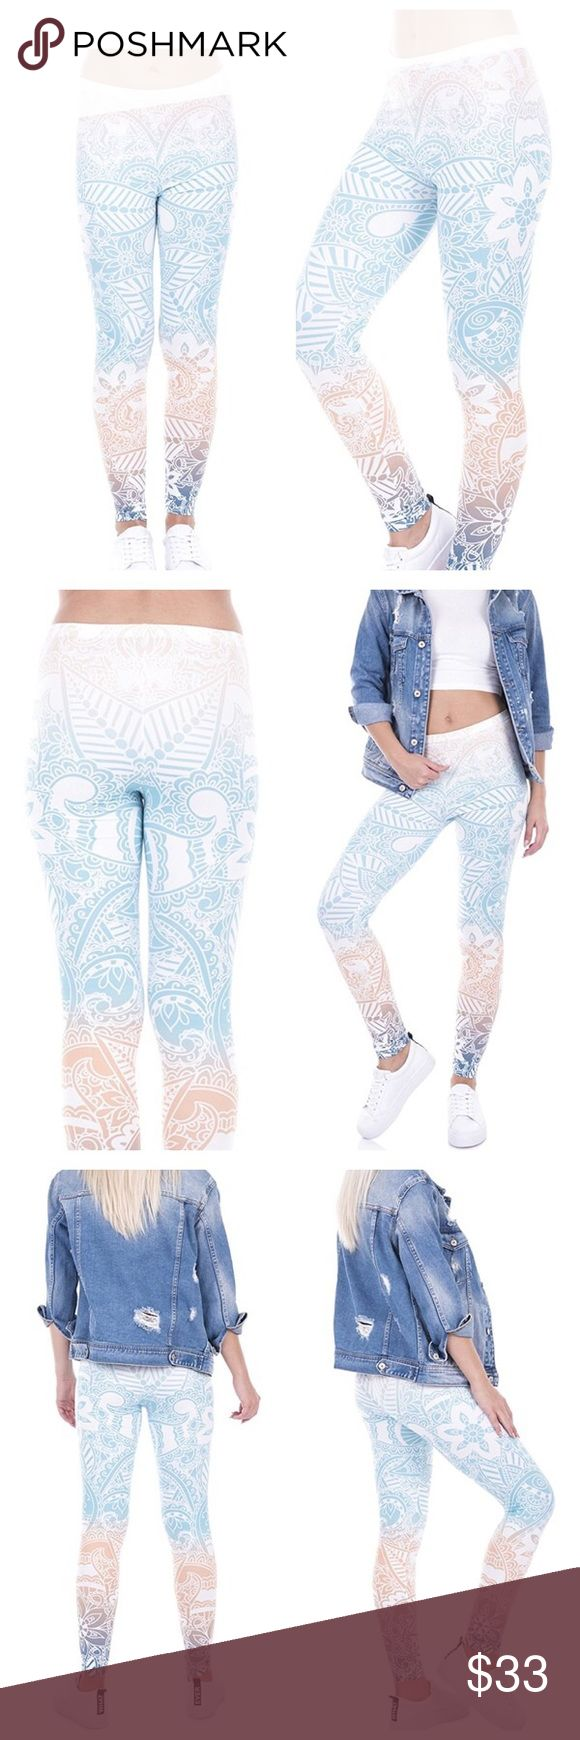 """MANDALA PRINT YOGA LEGGINGS Anything but basic.   MANDALA Leggings that are EVERYTHING you want in leggings-- soft and comfortable and UBER Trendy.  So refresh your practice and get even more excited about your workout in these gorgeous new leggings, same quality as high end leggings at a fraction of the cost.   ONE SIZE FITS COMFORTABLY 0-10 88% poly, 12% spandex length 36"""" Pants Leggings"""